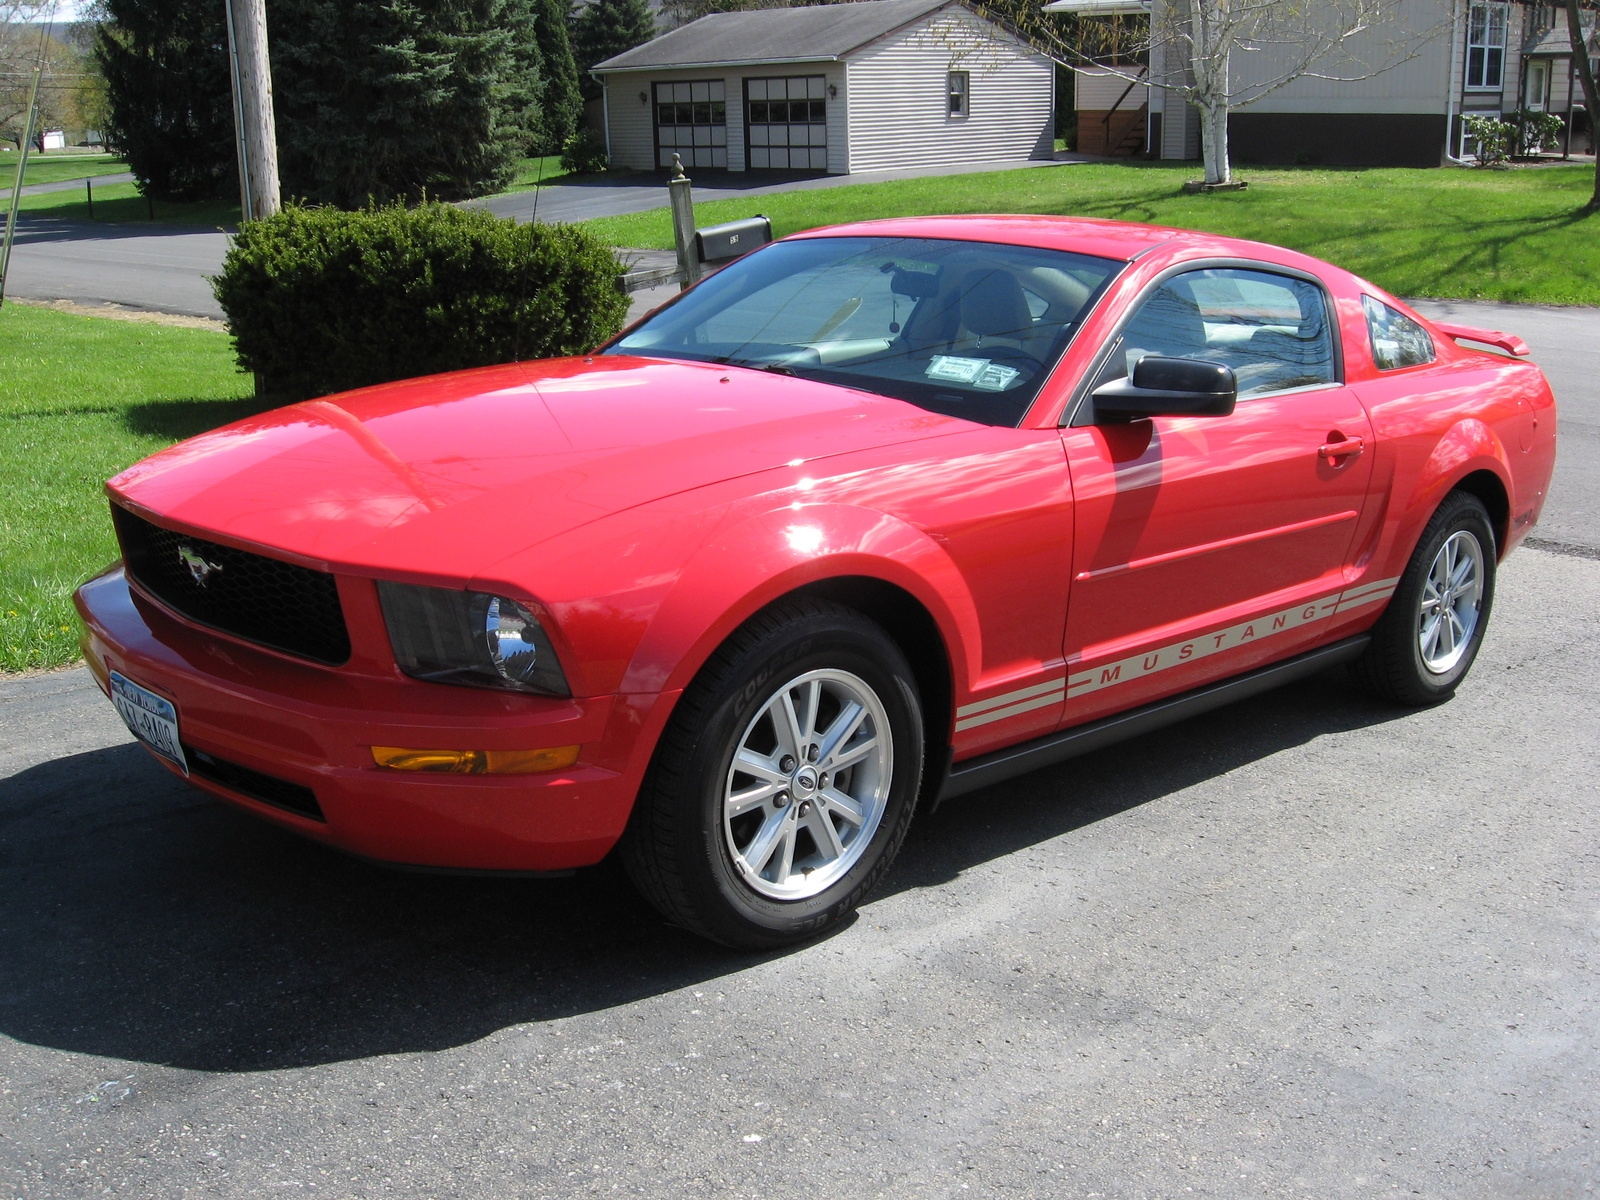 more 2006 ford mustang parts pictures on pinterest brz 0 60 times 0